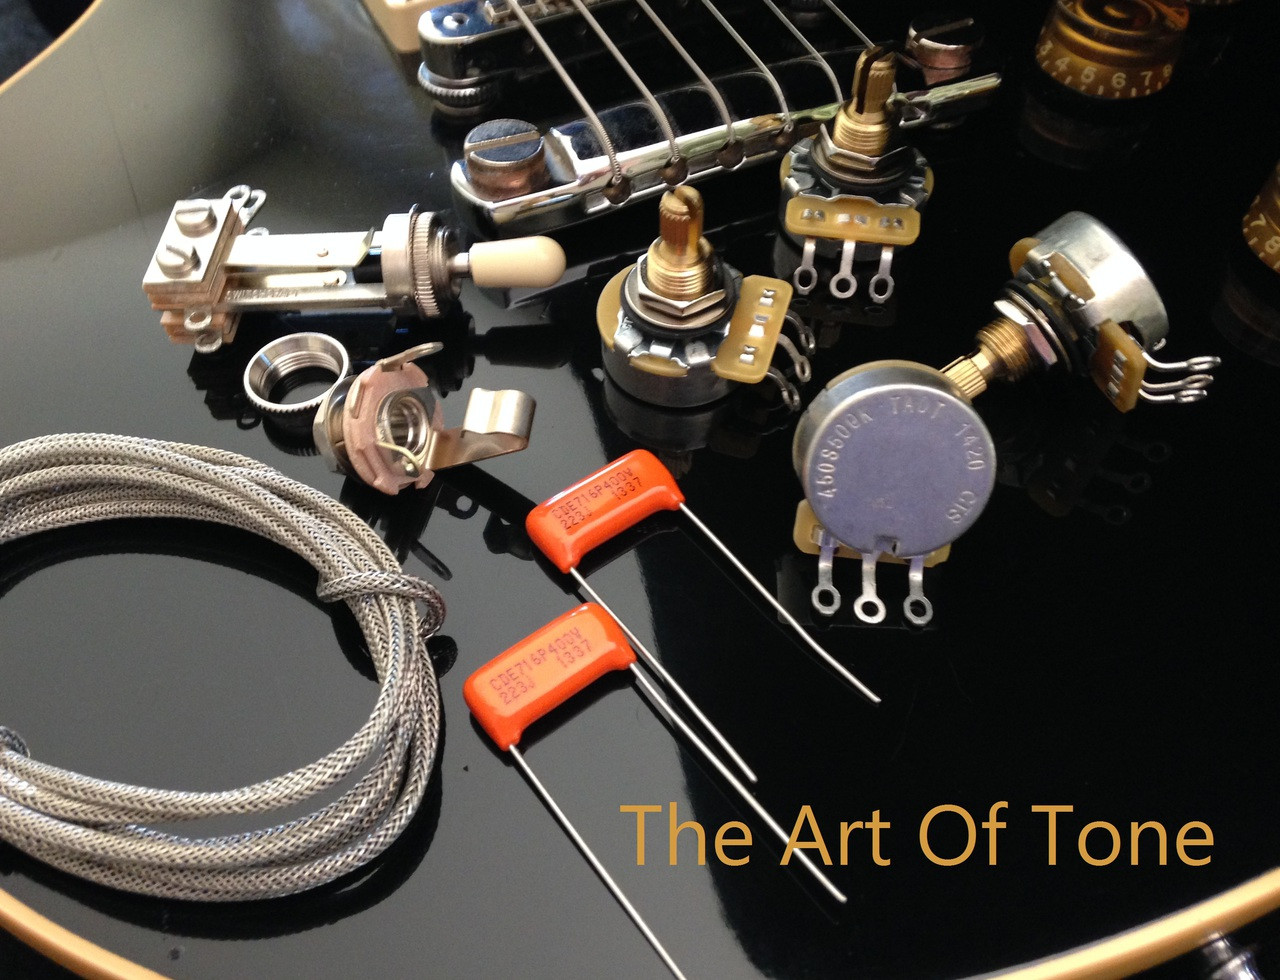 Gibson Les Paul Wiring Kit Diagram Online Amplifier With Capacitor Deluxe Short Shaft For Usa Guitars Epiphone Schematic